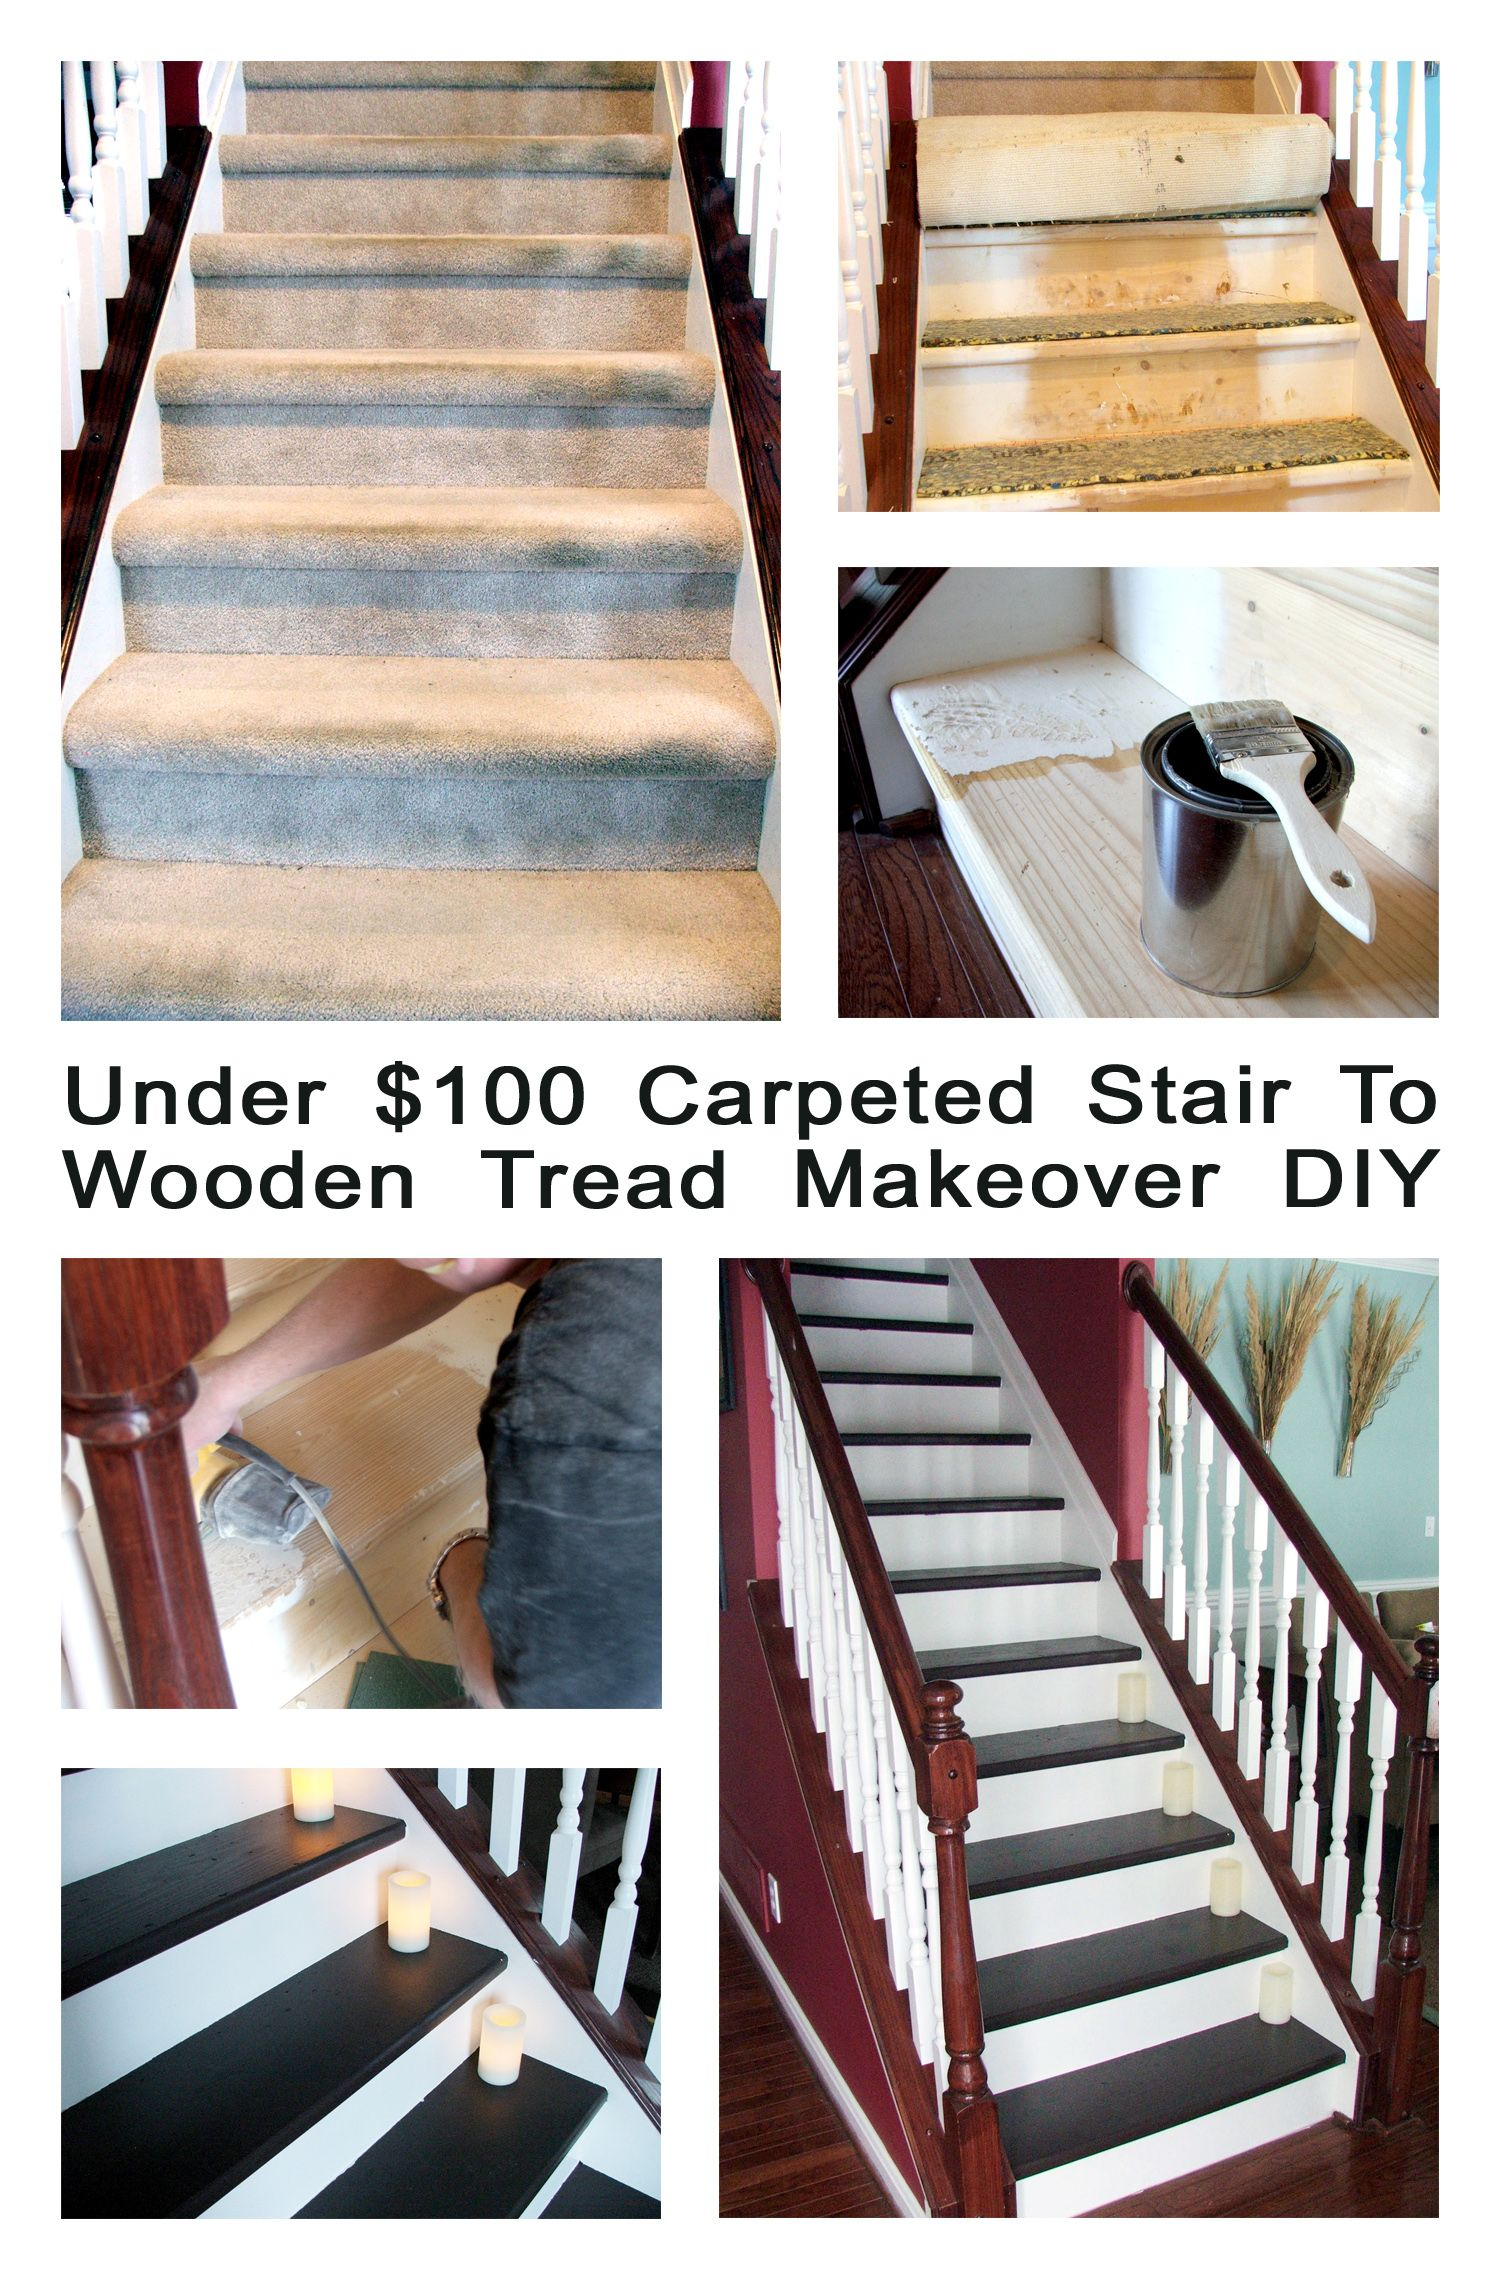 super easy diy projects that make a huge difference in your home